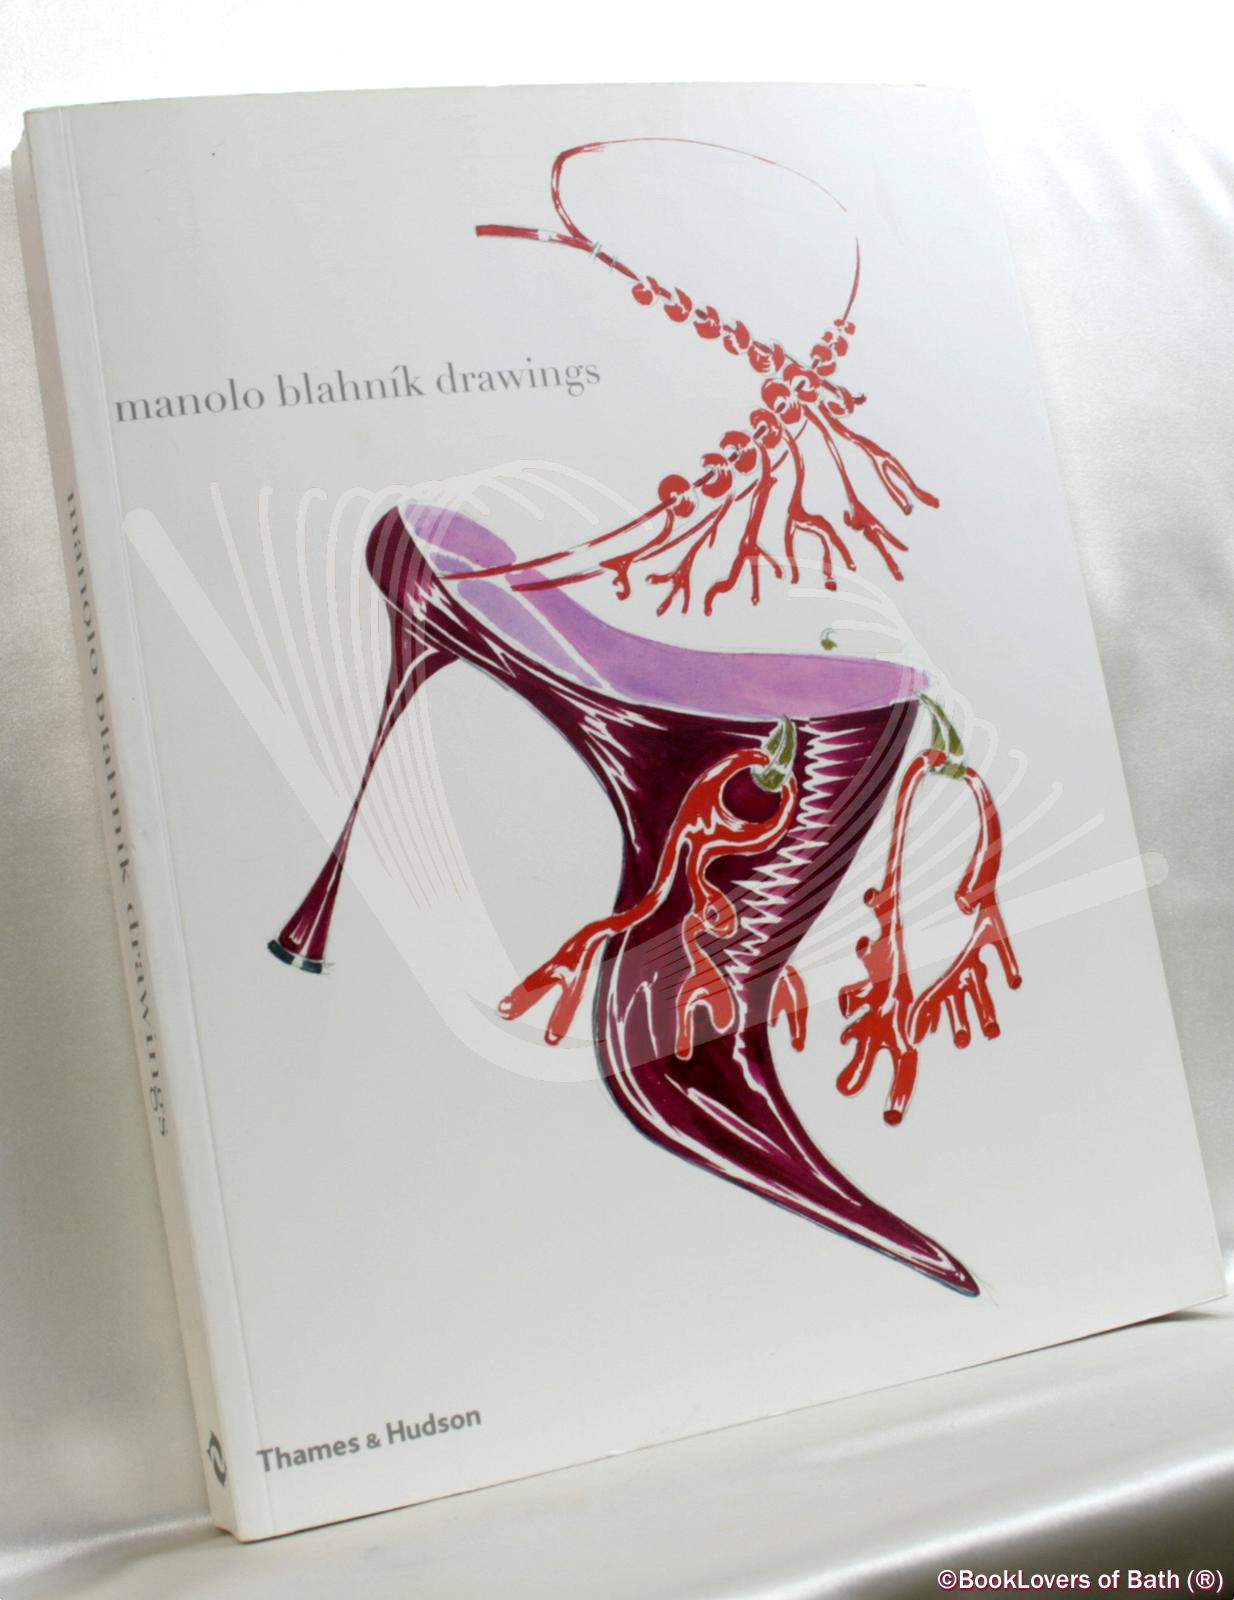 Manolo Blahnik: Drawings - Manolo Blahnik